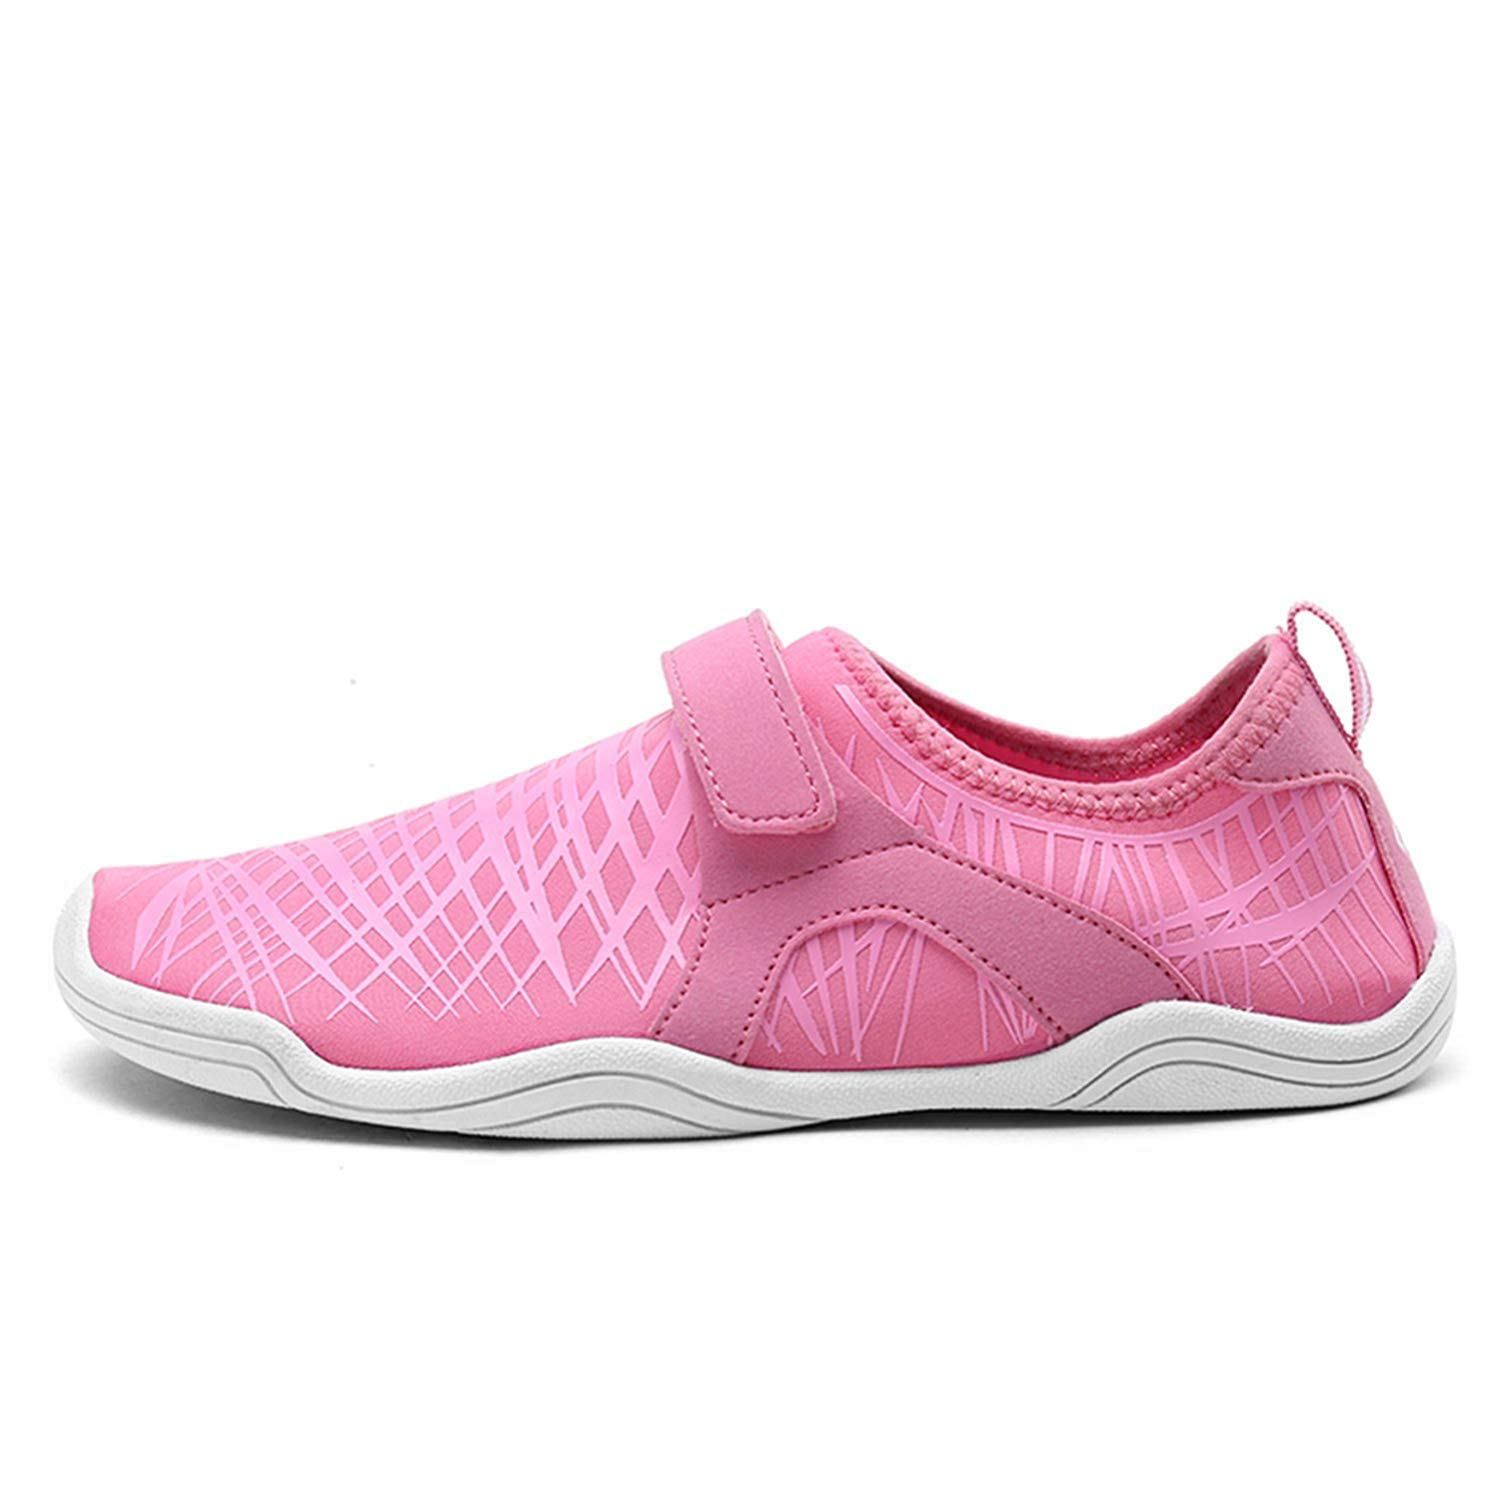 DREAM PAIRS Womens Quick-Dry Water Shoes Sports Walking Casual Sneakers